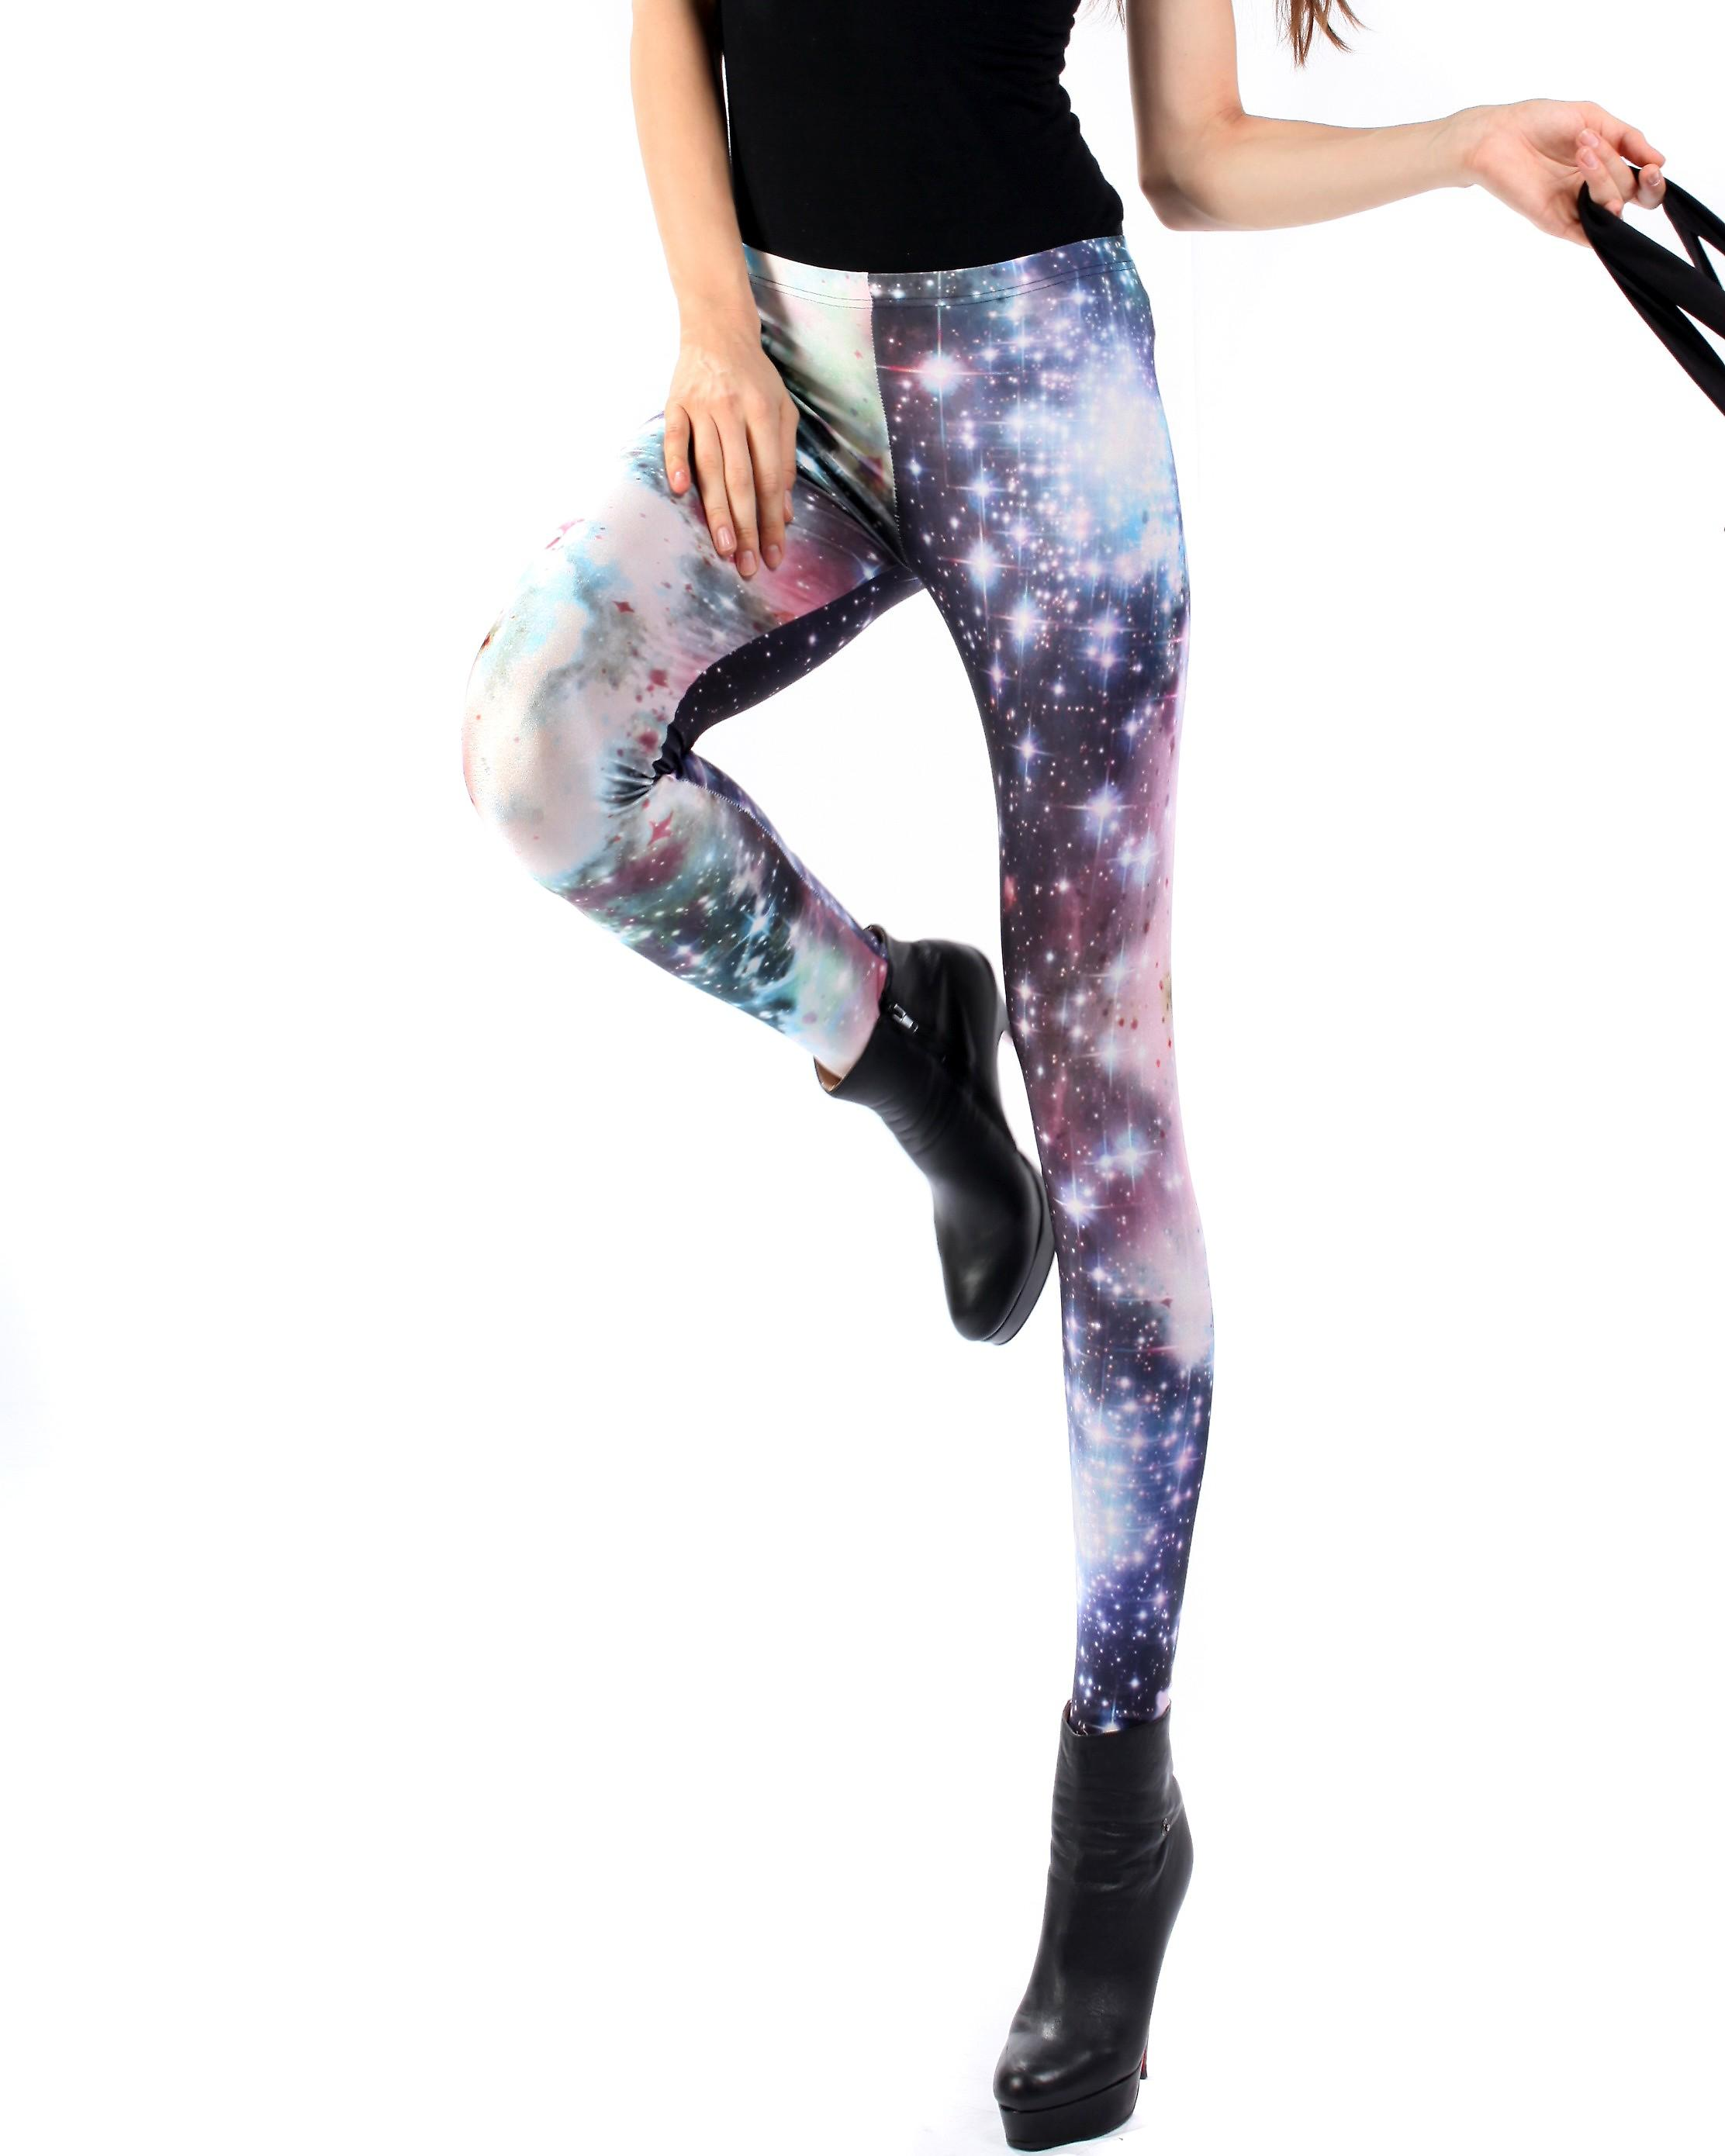 Waooh - Fashion - Leggings long fantasy - Starry Galaxy